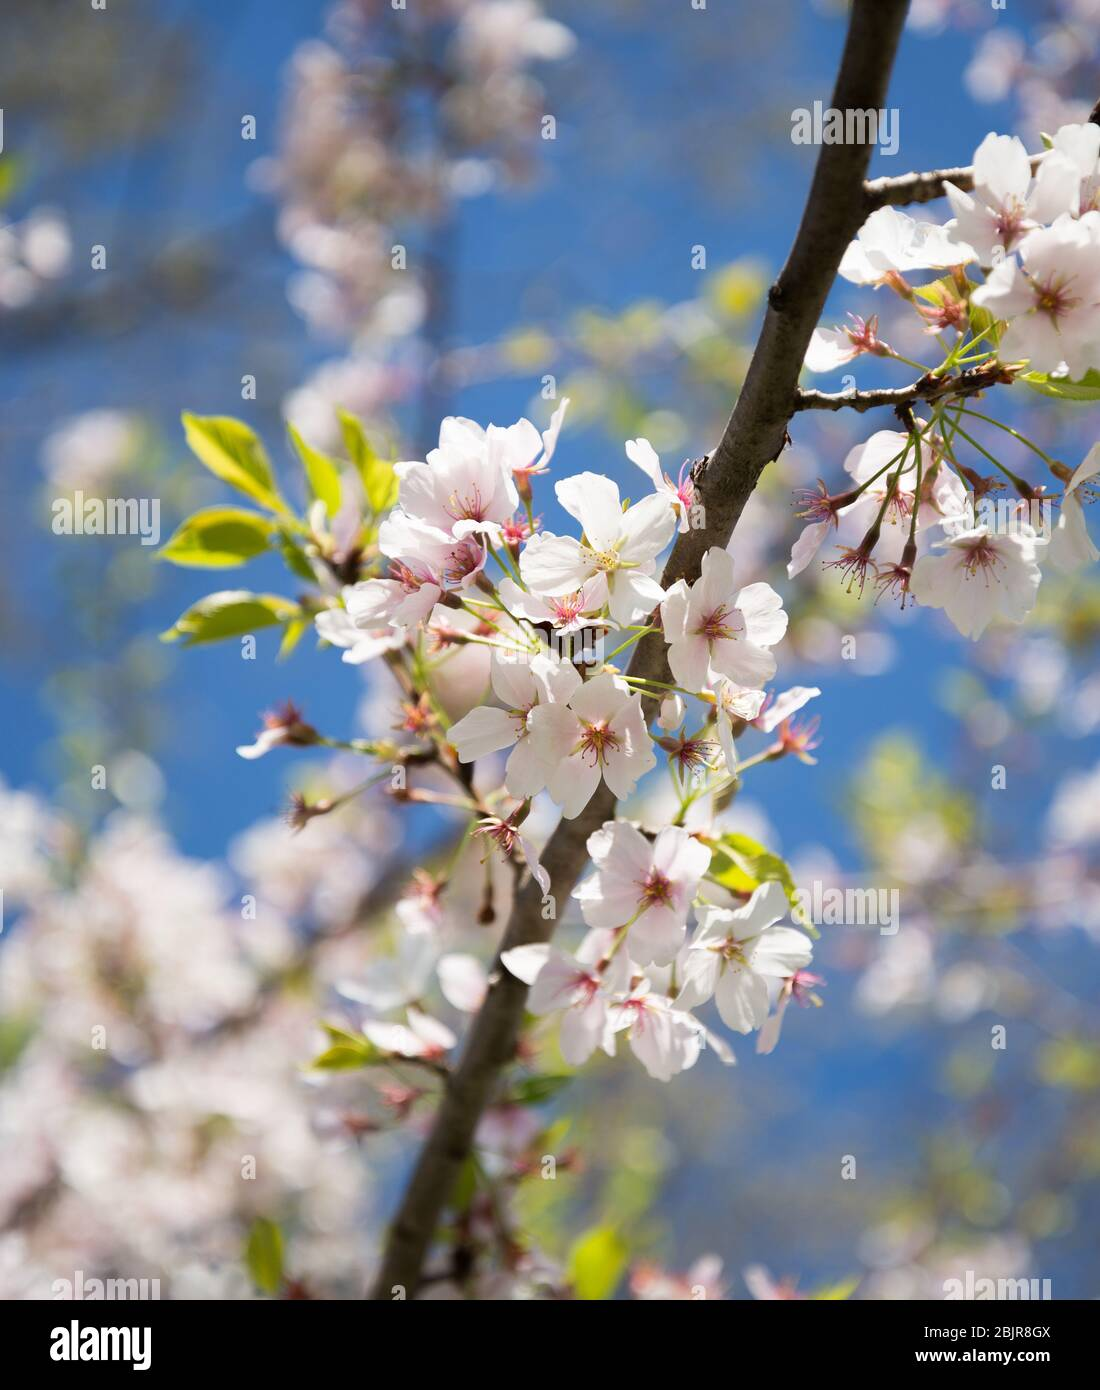 Close Up Of Yoshino Cherry Blossoms At The National Cherry Blossom Festival In Washington Dc Stock Photo Alamy,Perennials Plant With Purple Flowers And Green Leaves